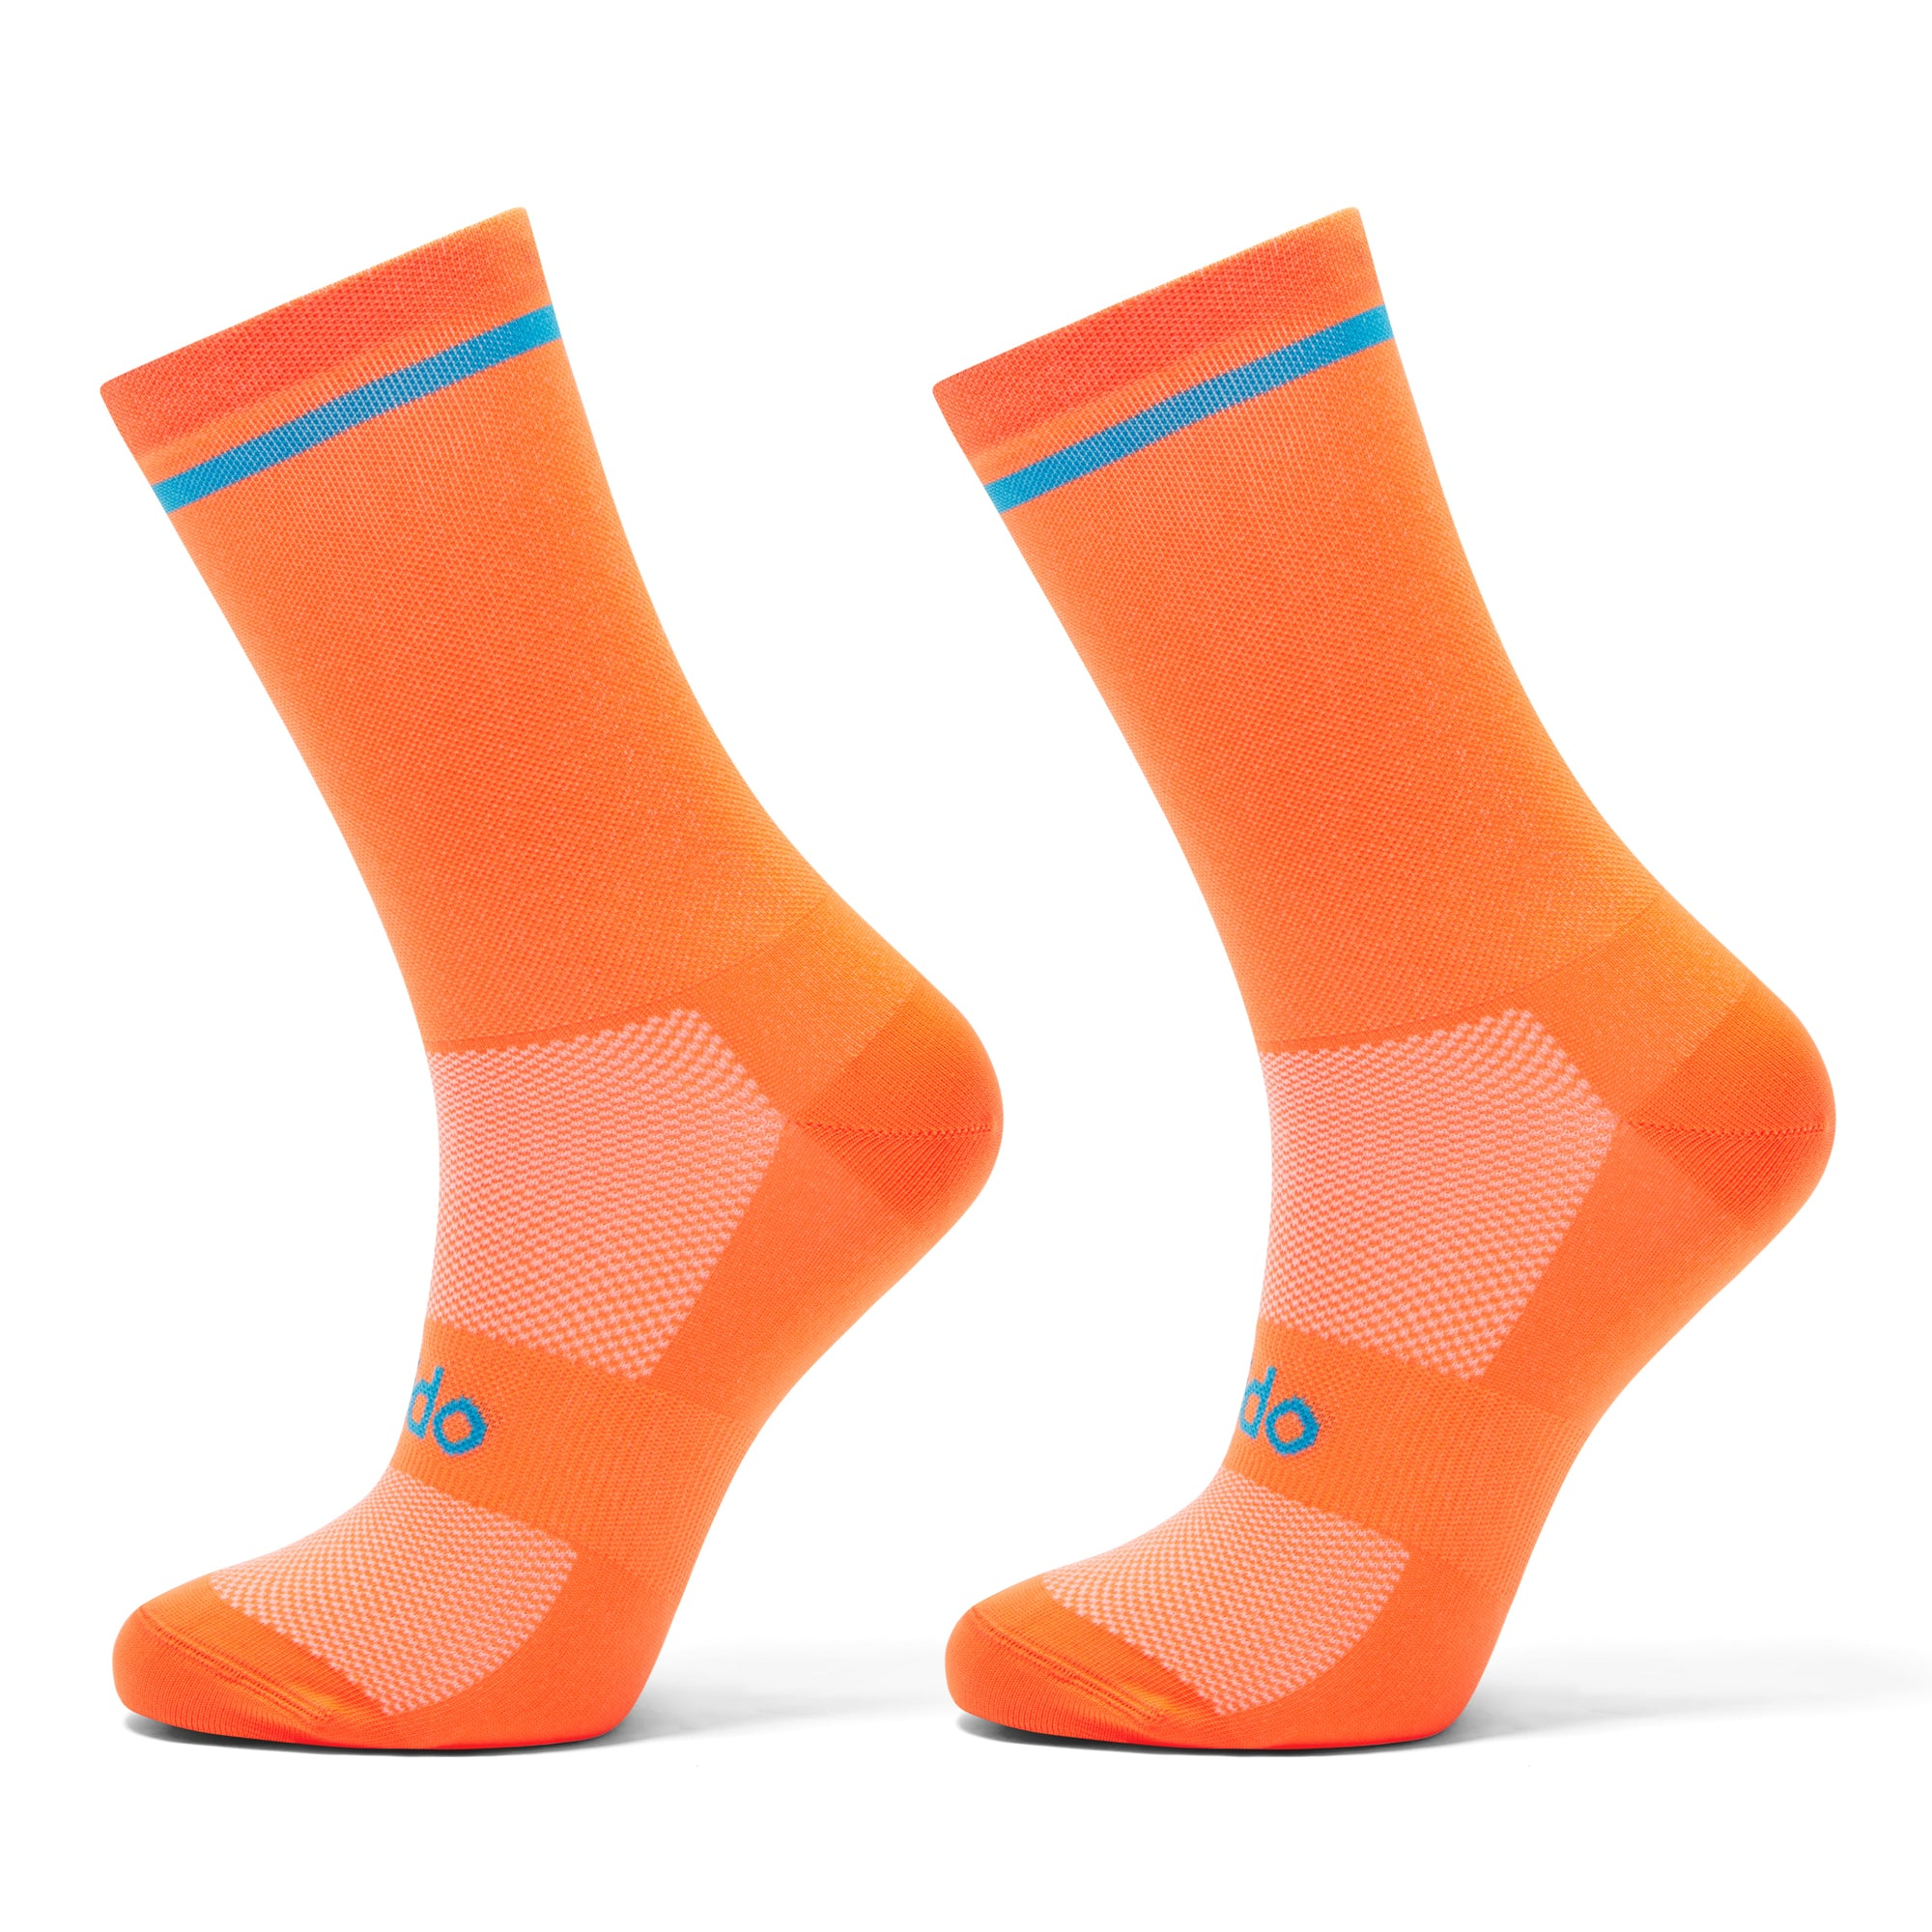 Orange cycling socks with blue trim